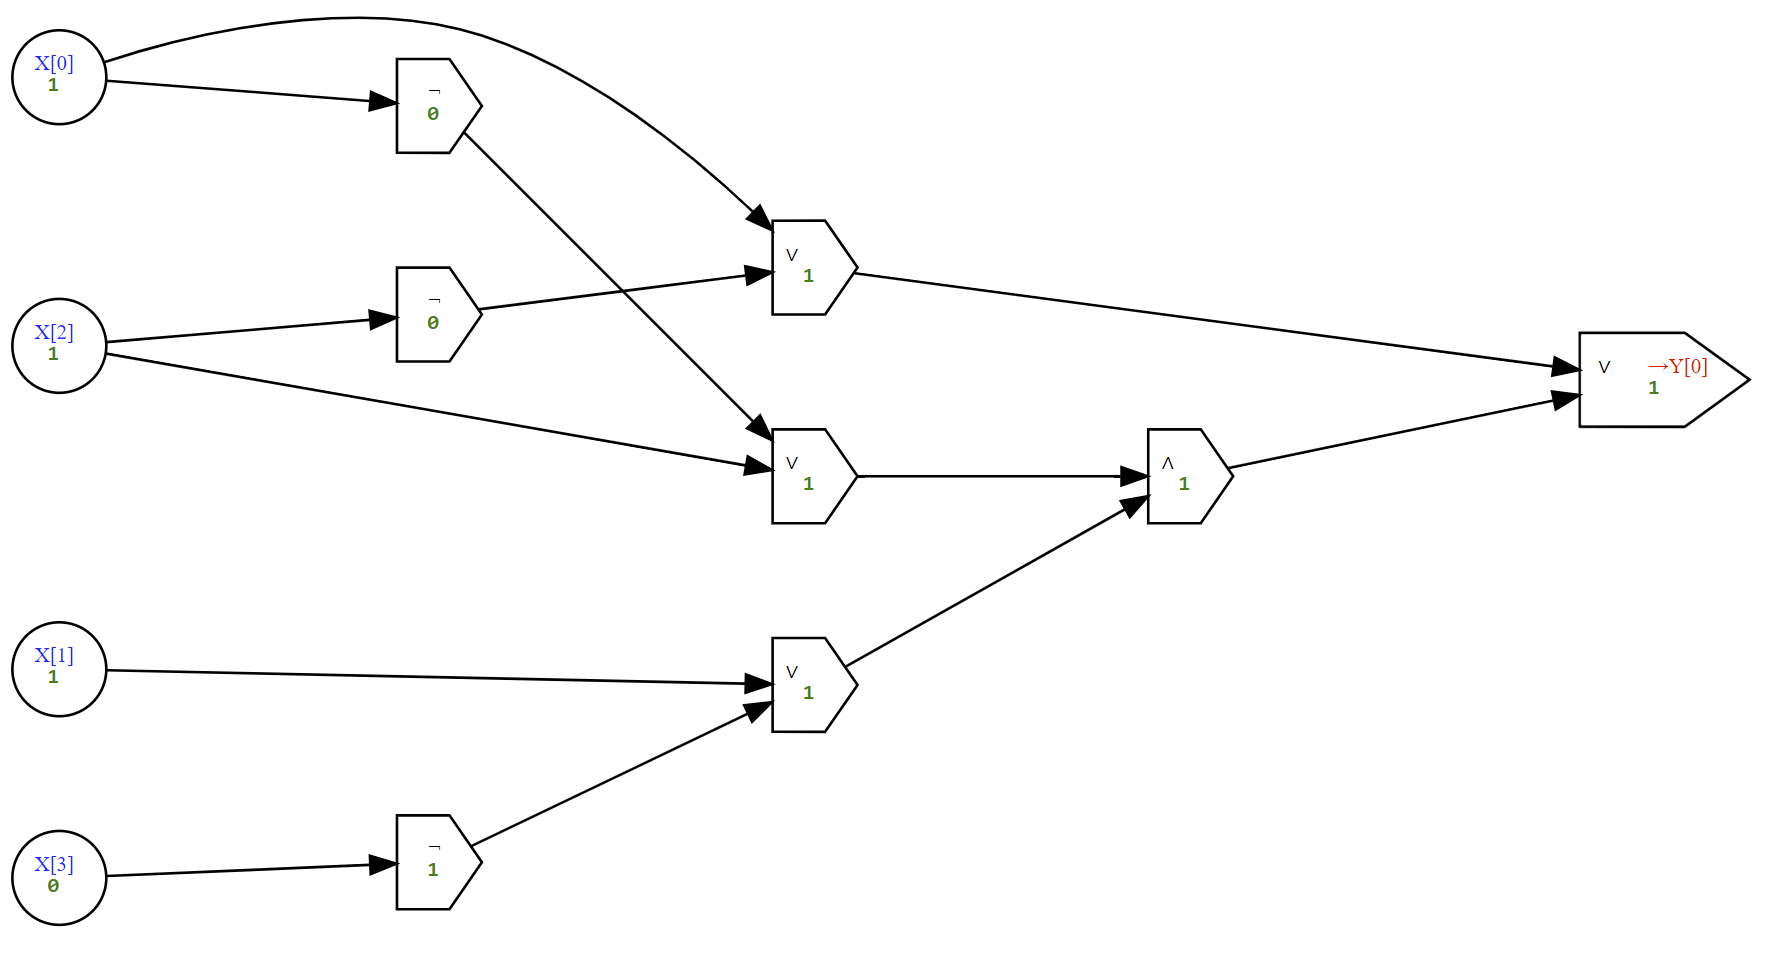 A circuit for computing the \ensuremath{\mathit{CMP}} program. The evaluation of this circuit on (1,1,1,0) yields the output 1, since the number 3 (represented in binary as 11) is larger than the number 2 (represented in binary as 10).